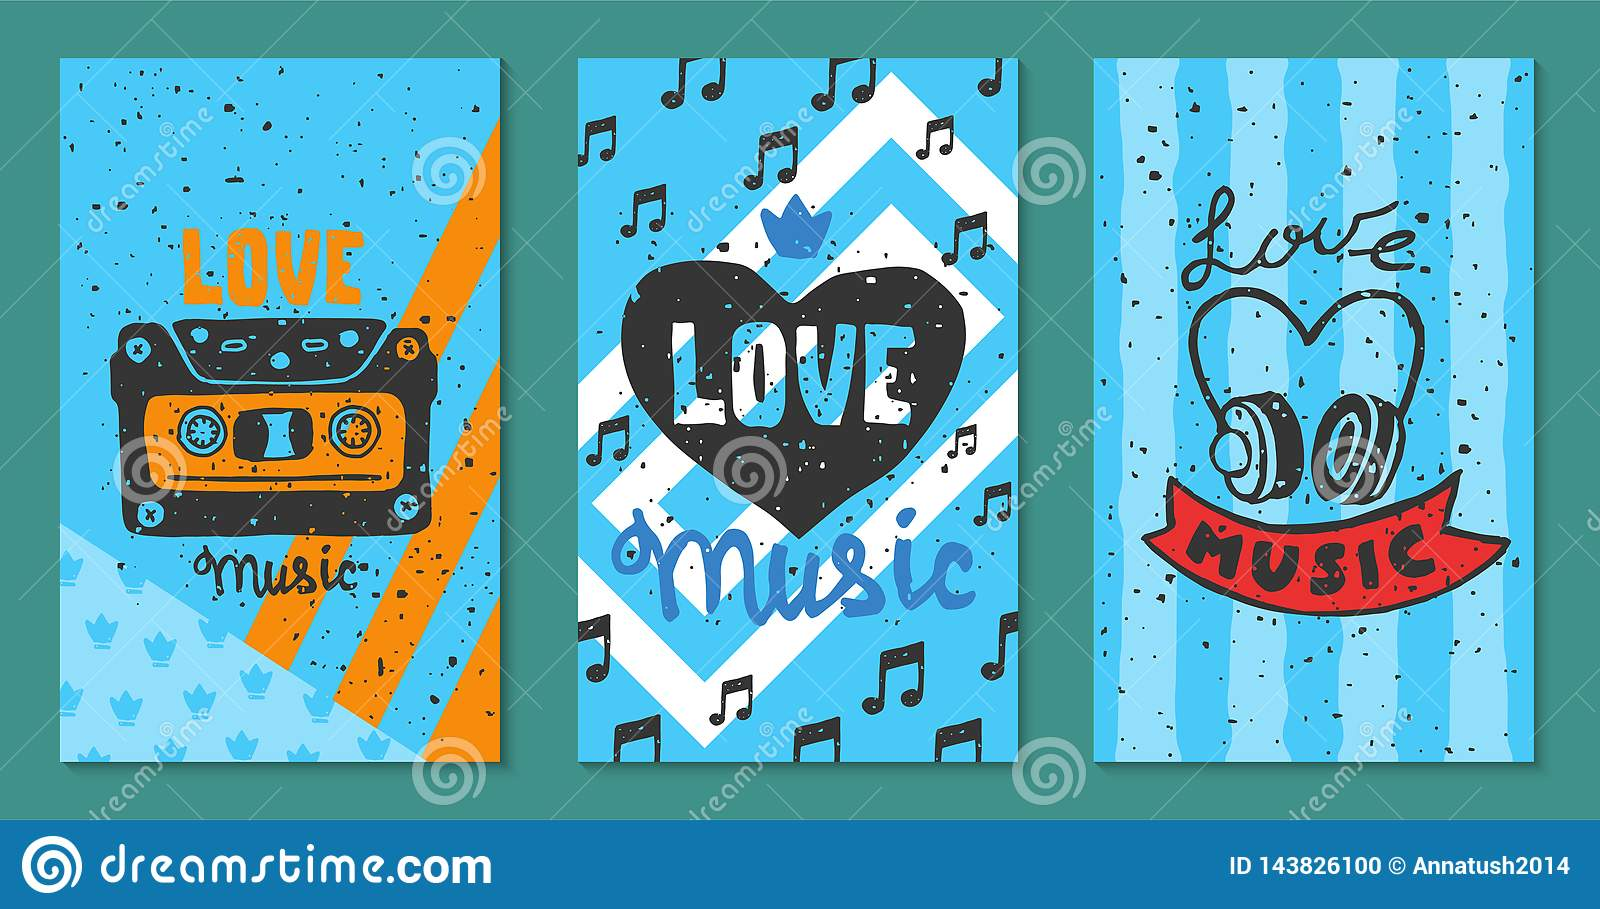 Love music festival cards vector illustration. Let your heart sing. Music make everything better. Electric guitars with